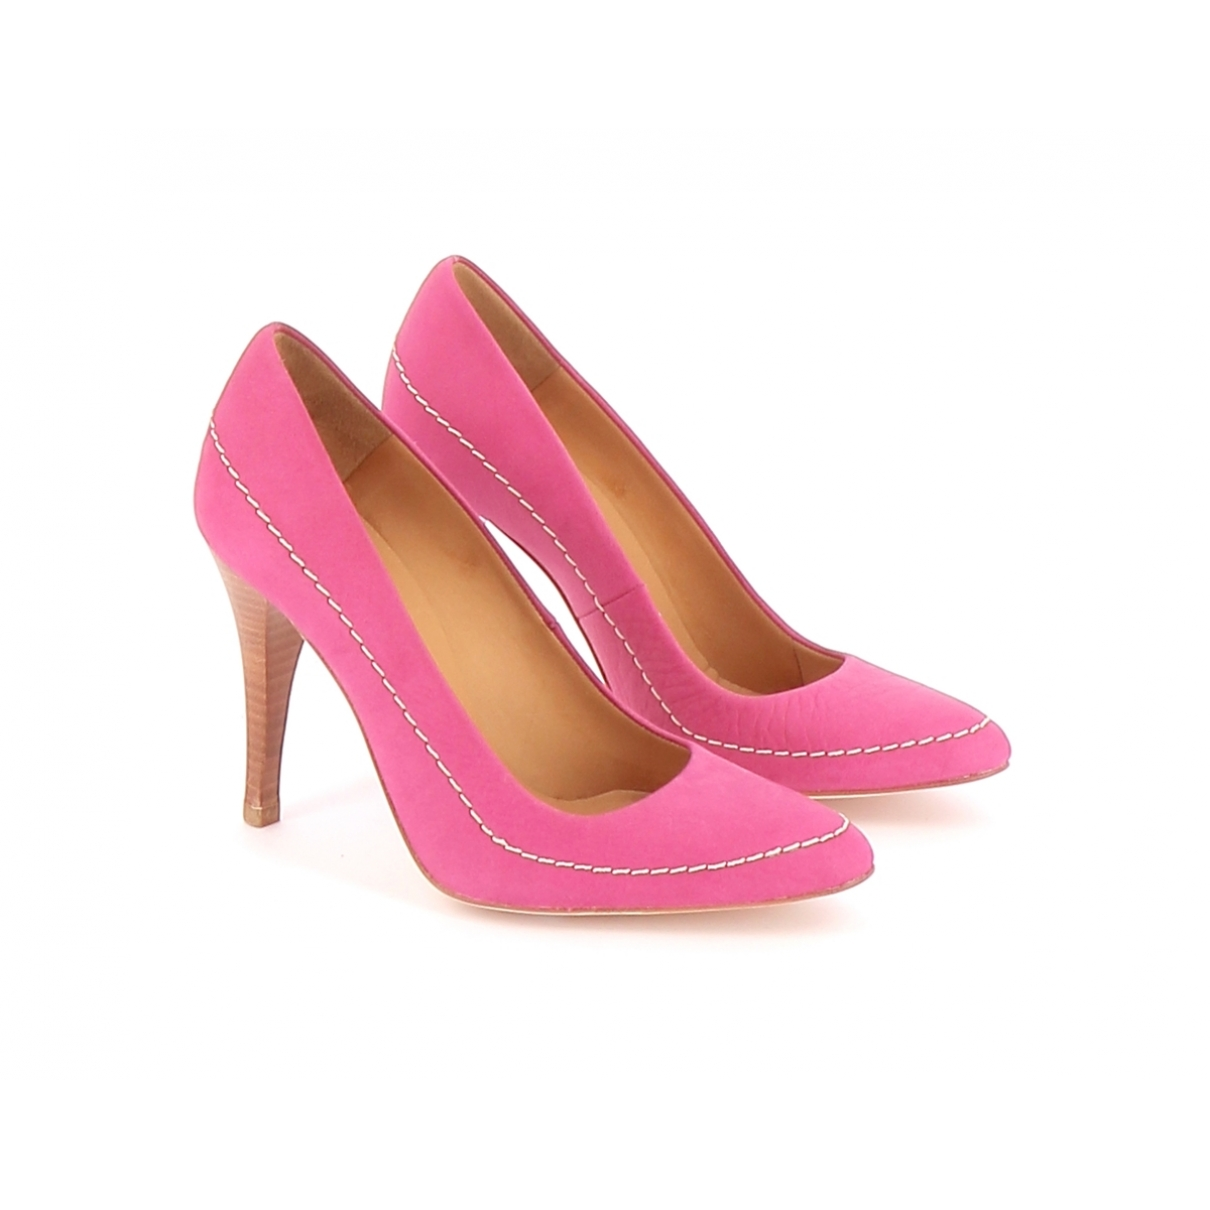 Vanessa Bruno Athe \N Pink Leather Heels for Women 39 EU